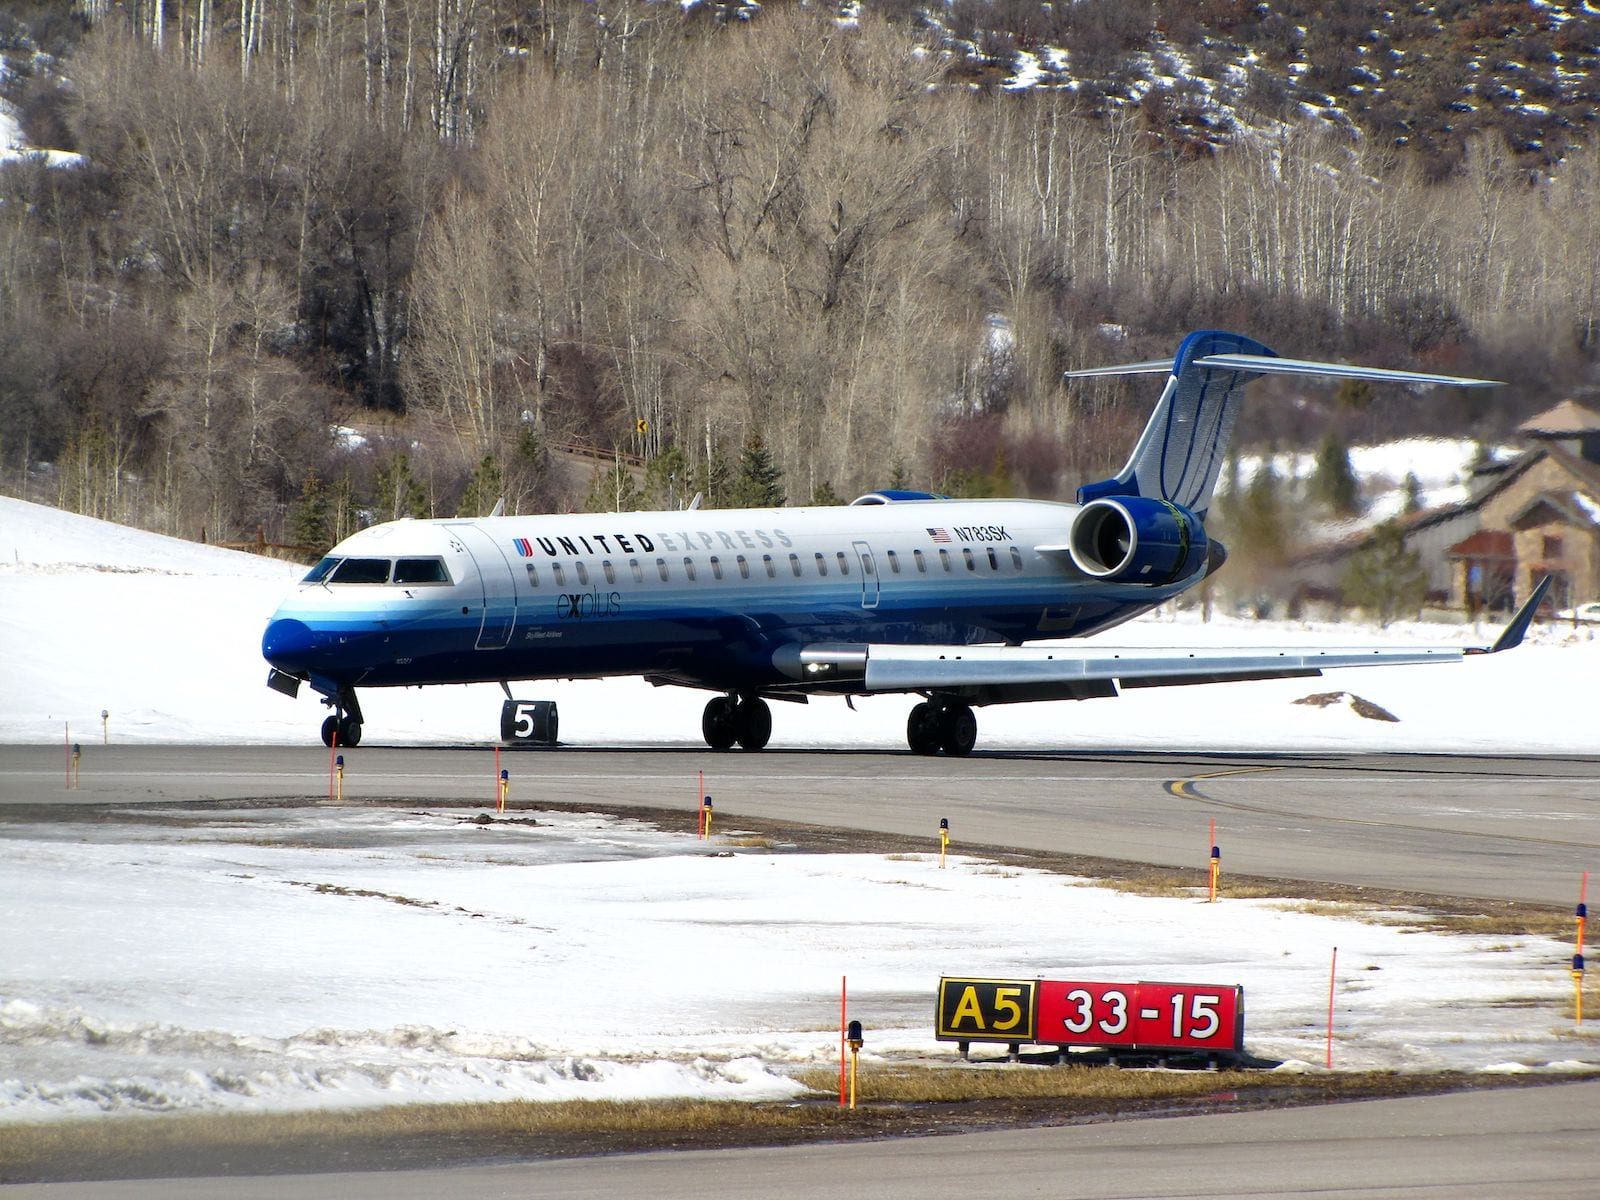 Aspen-Pitkin County Airport United Airplane Winter